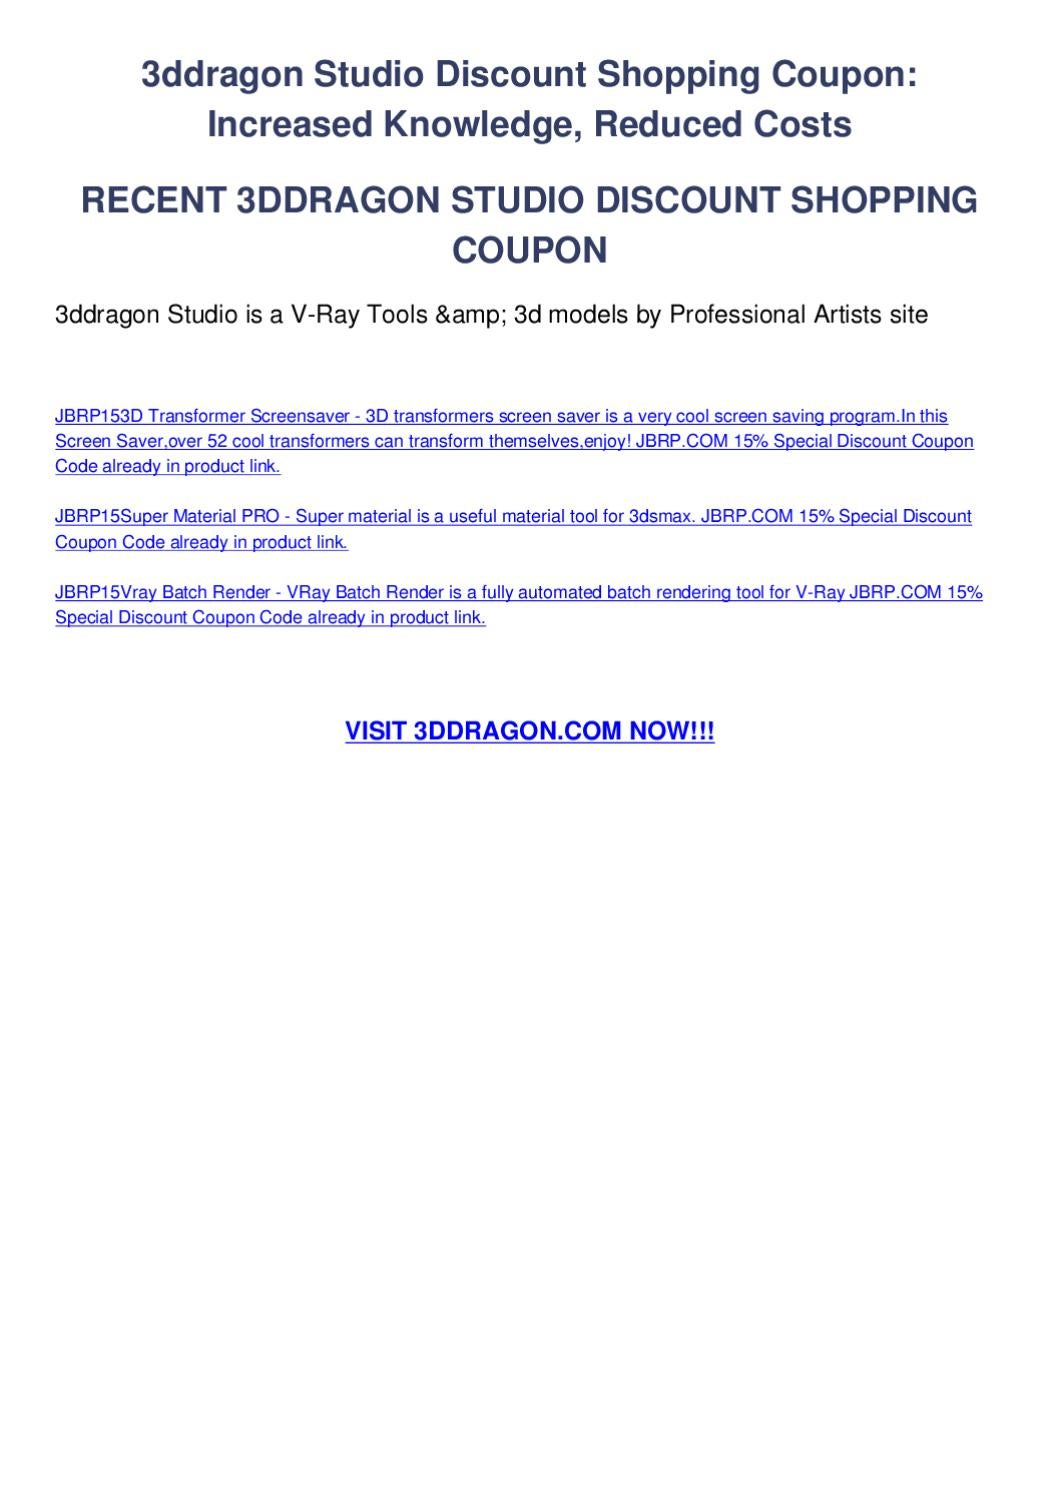 3ddragon studio discount shopping coupon by melis zereng - issuu